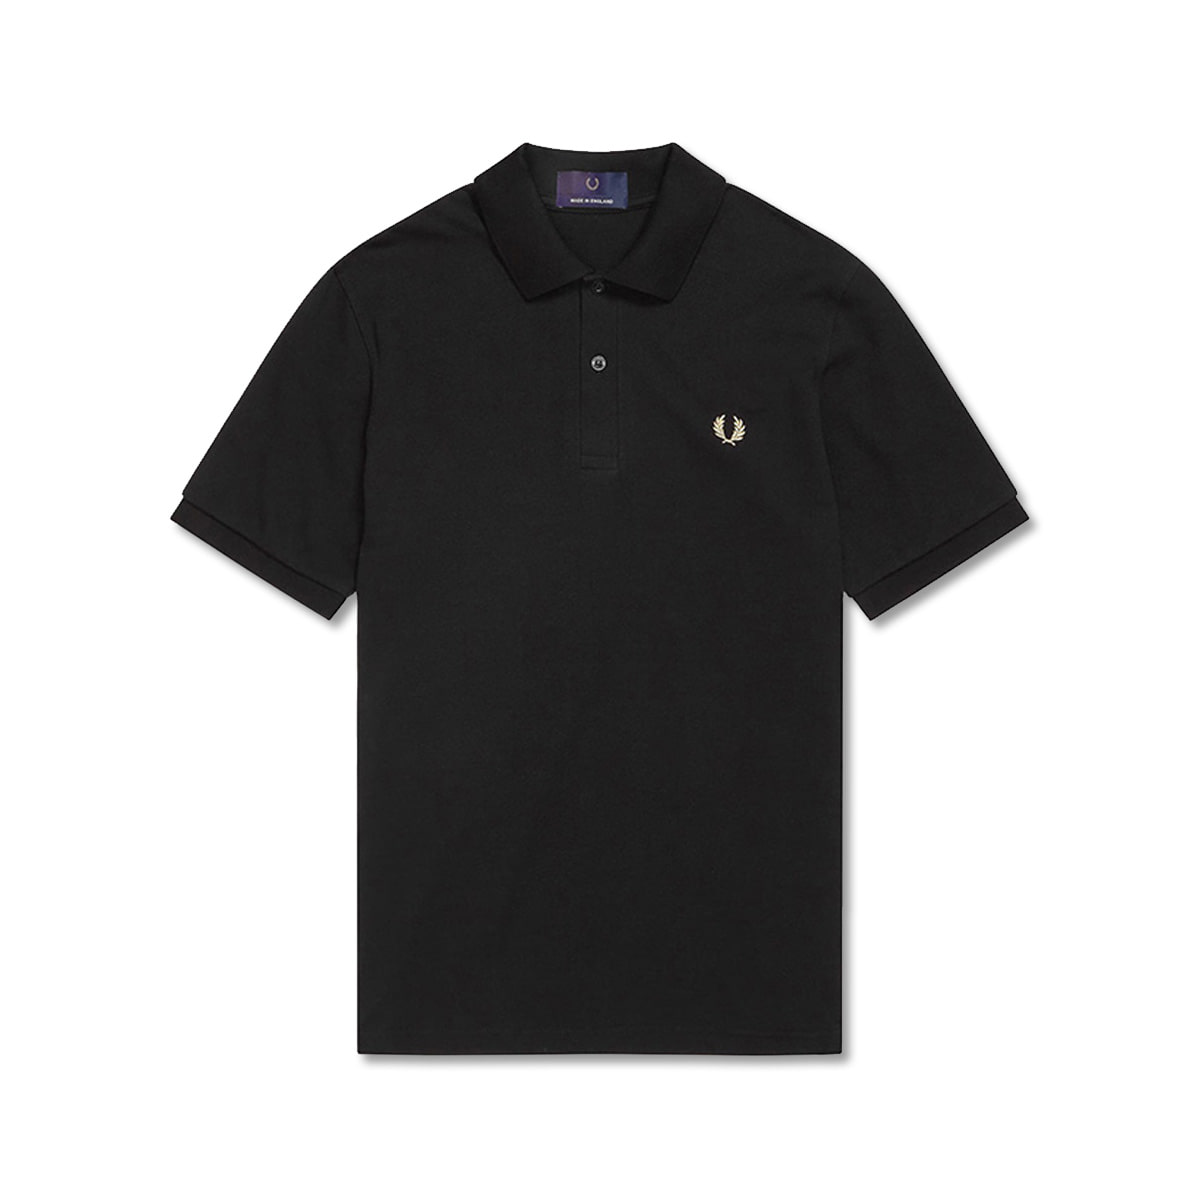 [FRED PERRY] THE ORIGINAL FRED PERRY SHIRT 'BLACK'